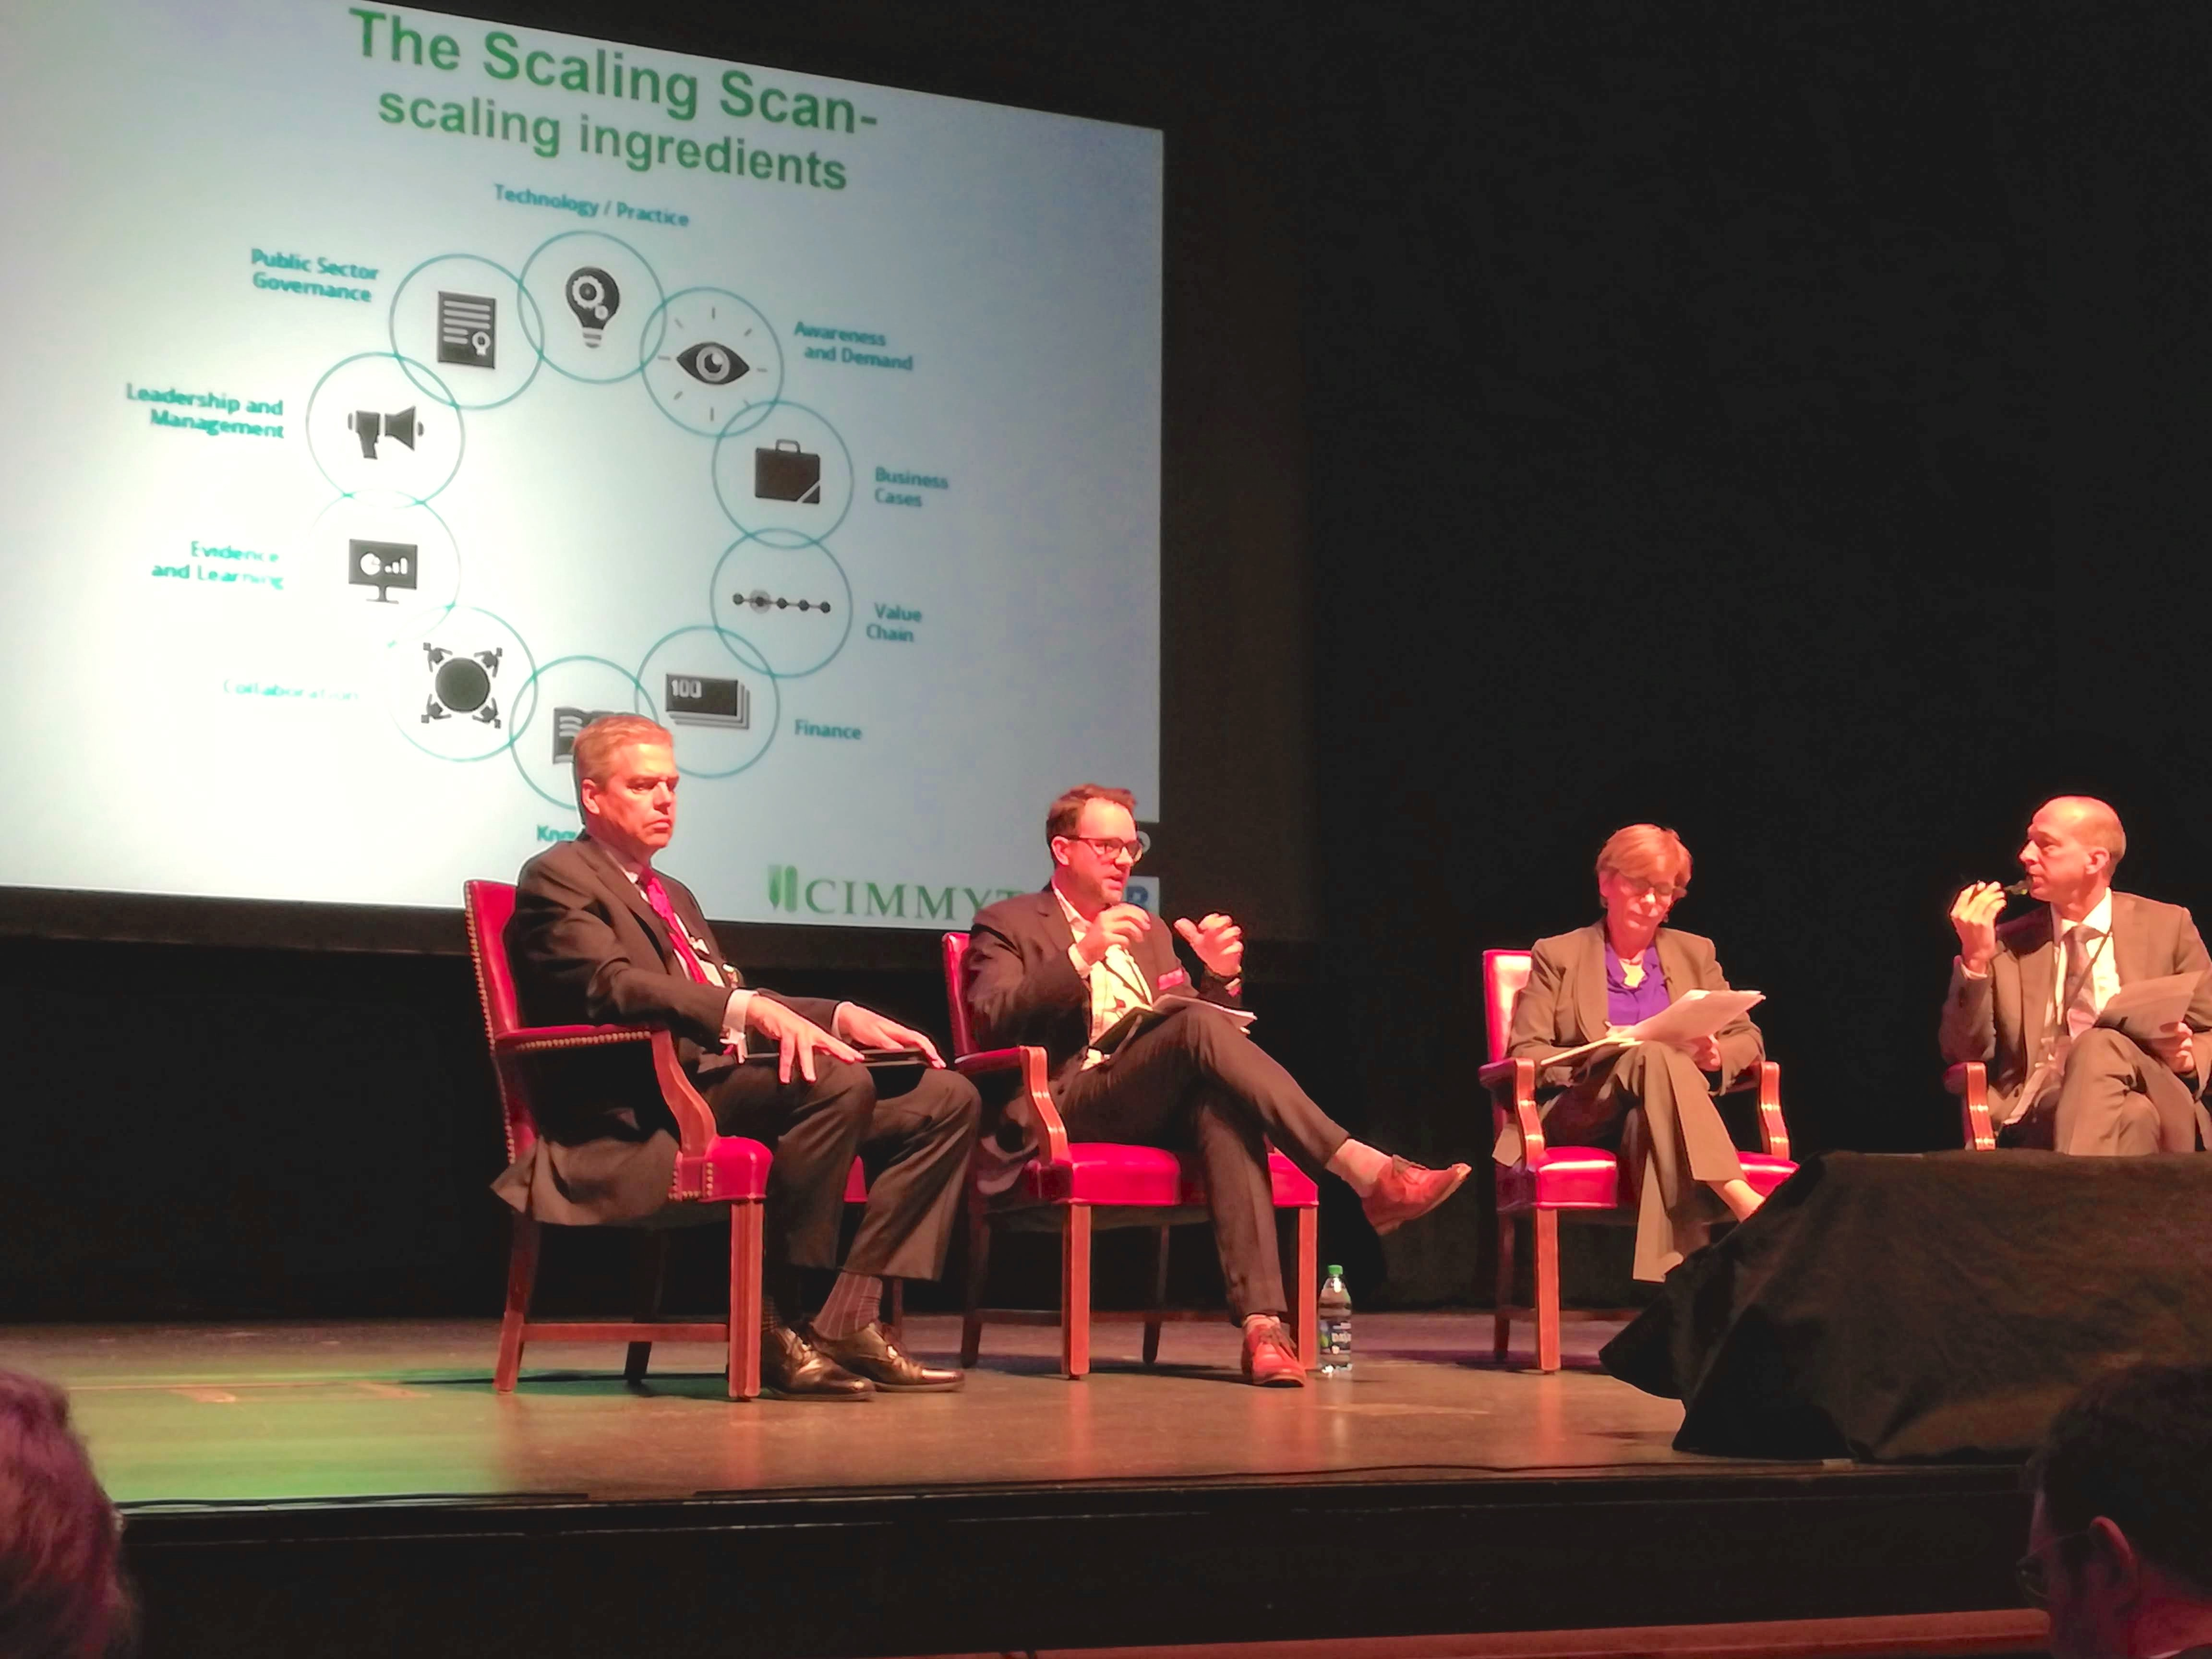 """Lennart Woltering (second from left) presents the """"ingredients"""" of the Scaling Scan tools during one of the sessions of the Purdue Scale Up Conference. (Photo: Rachel Cramer/CIMMYT)"""